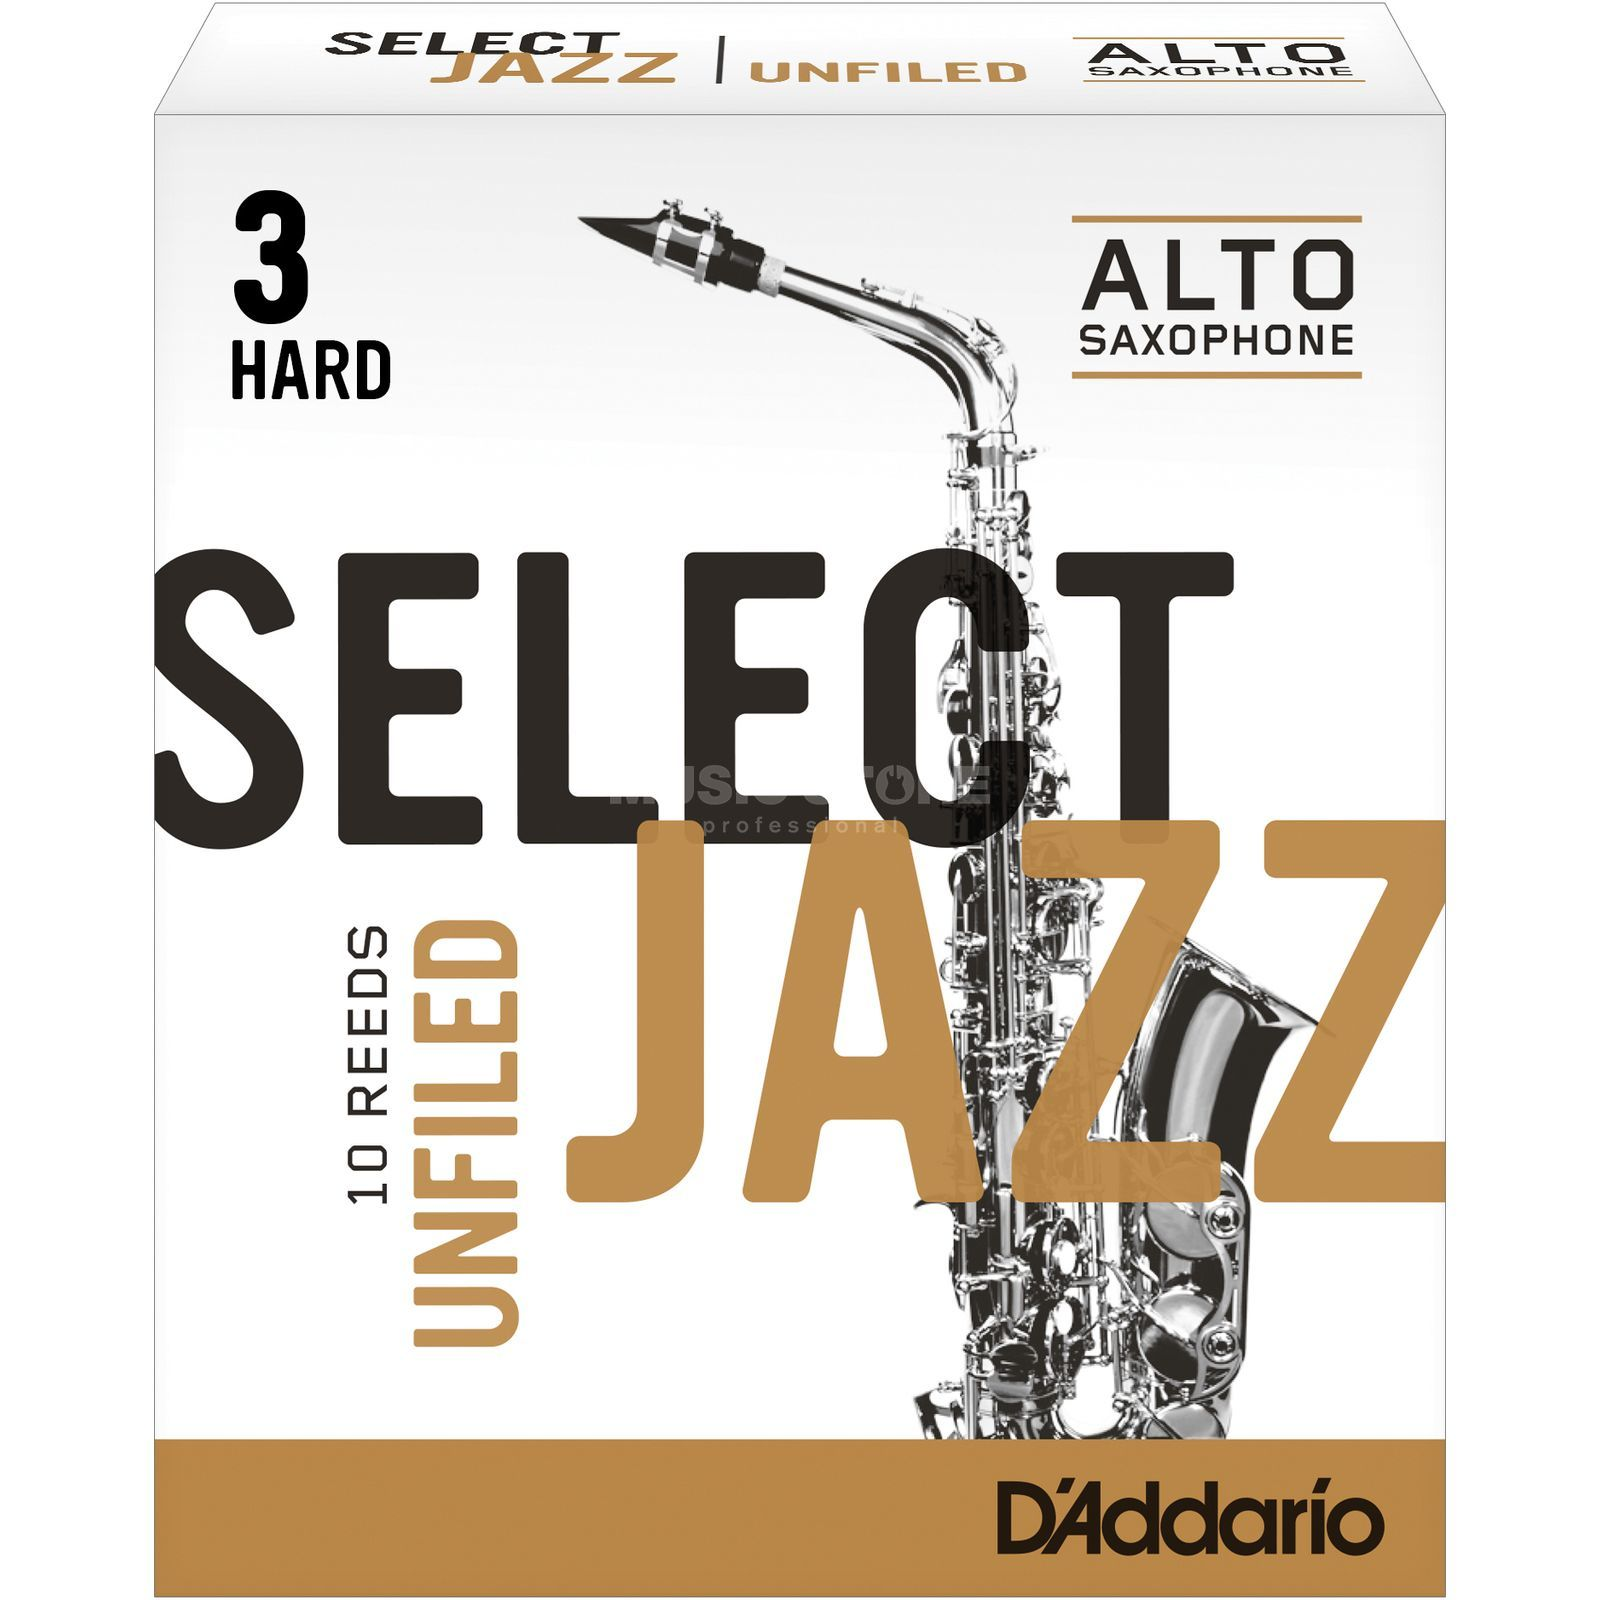 D'Addario Woodwinds Alto Sax Reeds 3H Unfiled Box of 10 Изображение товара